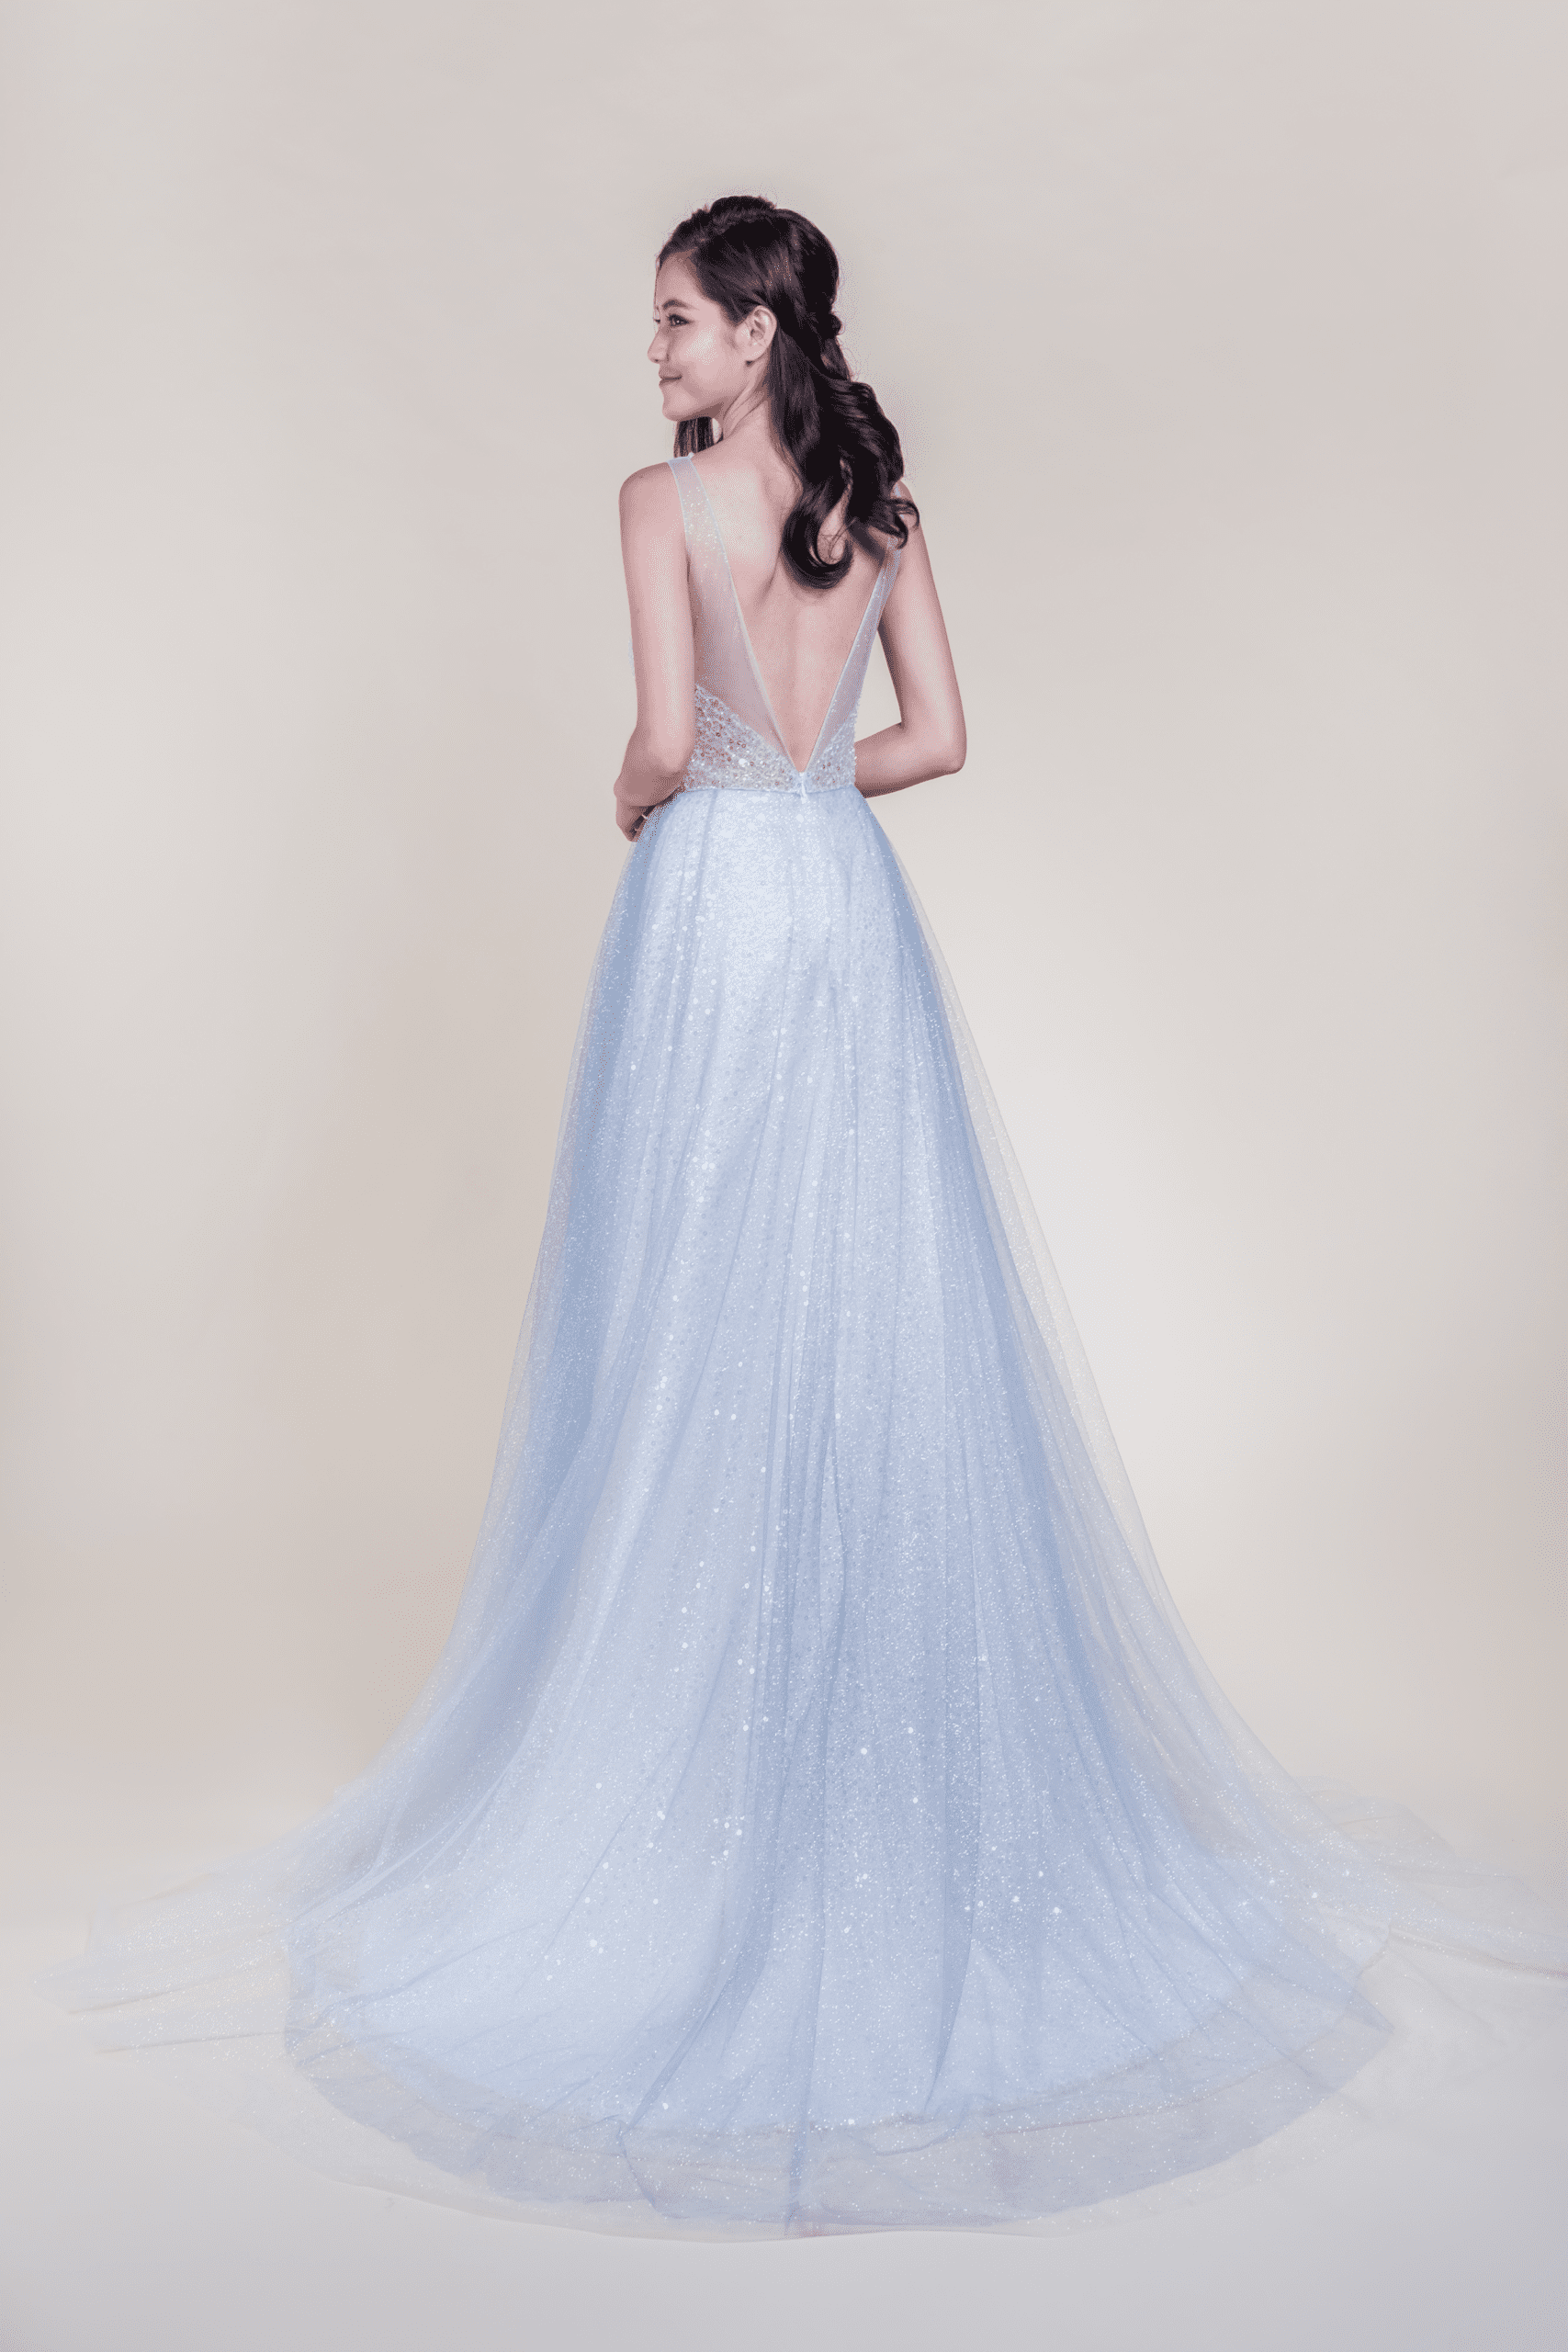 Trixie-affordable-Evening-Dress-for-rent-in-Singapore